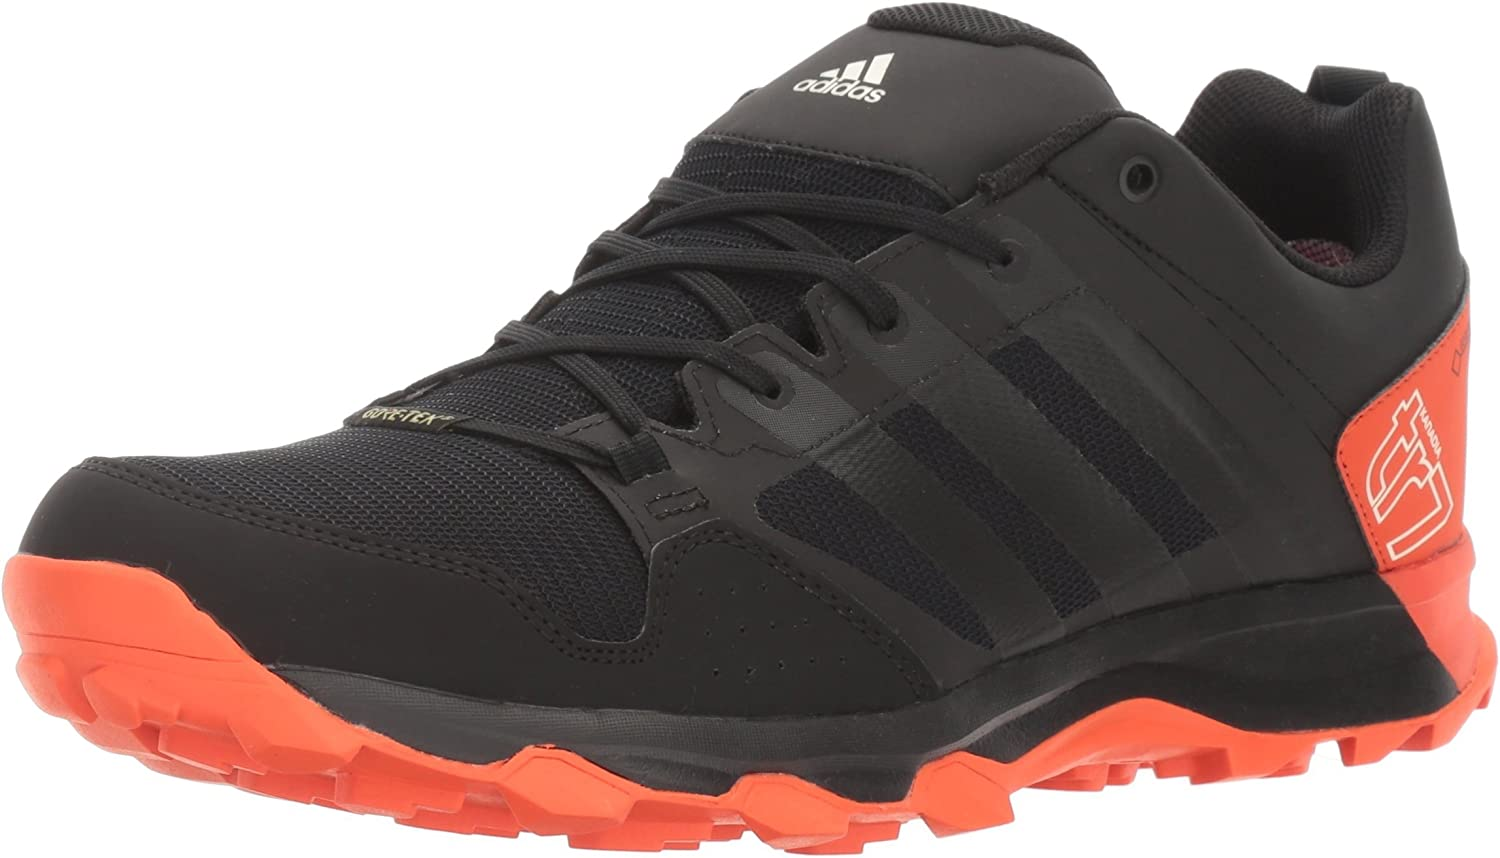 tinción Triatleta Motear  Amazon.com | adidas Outdoor Men's Kanadia 7 TR Gore-Tex Trail Running Shoe  | Trail Running